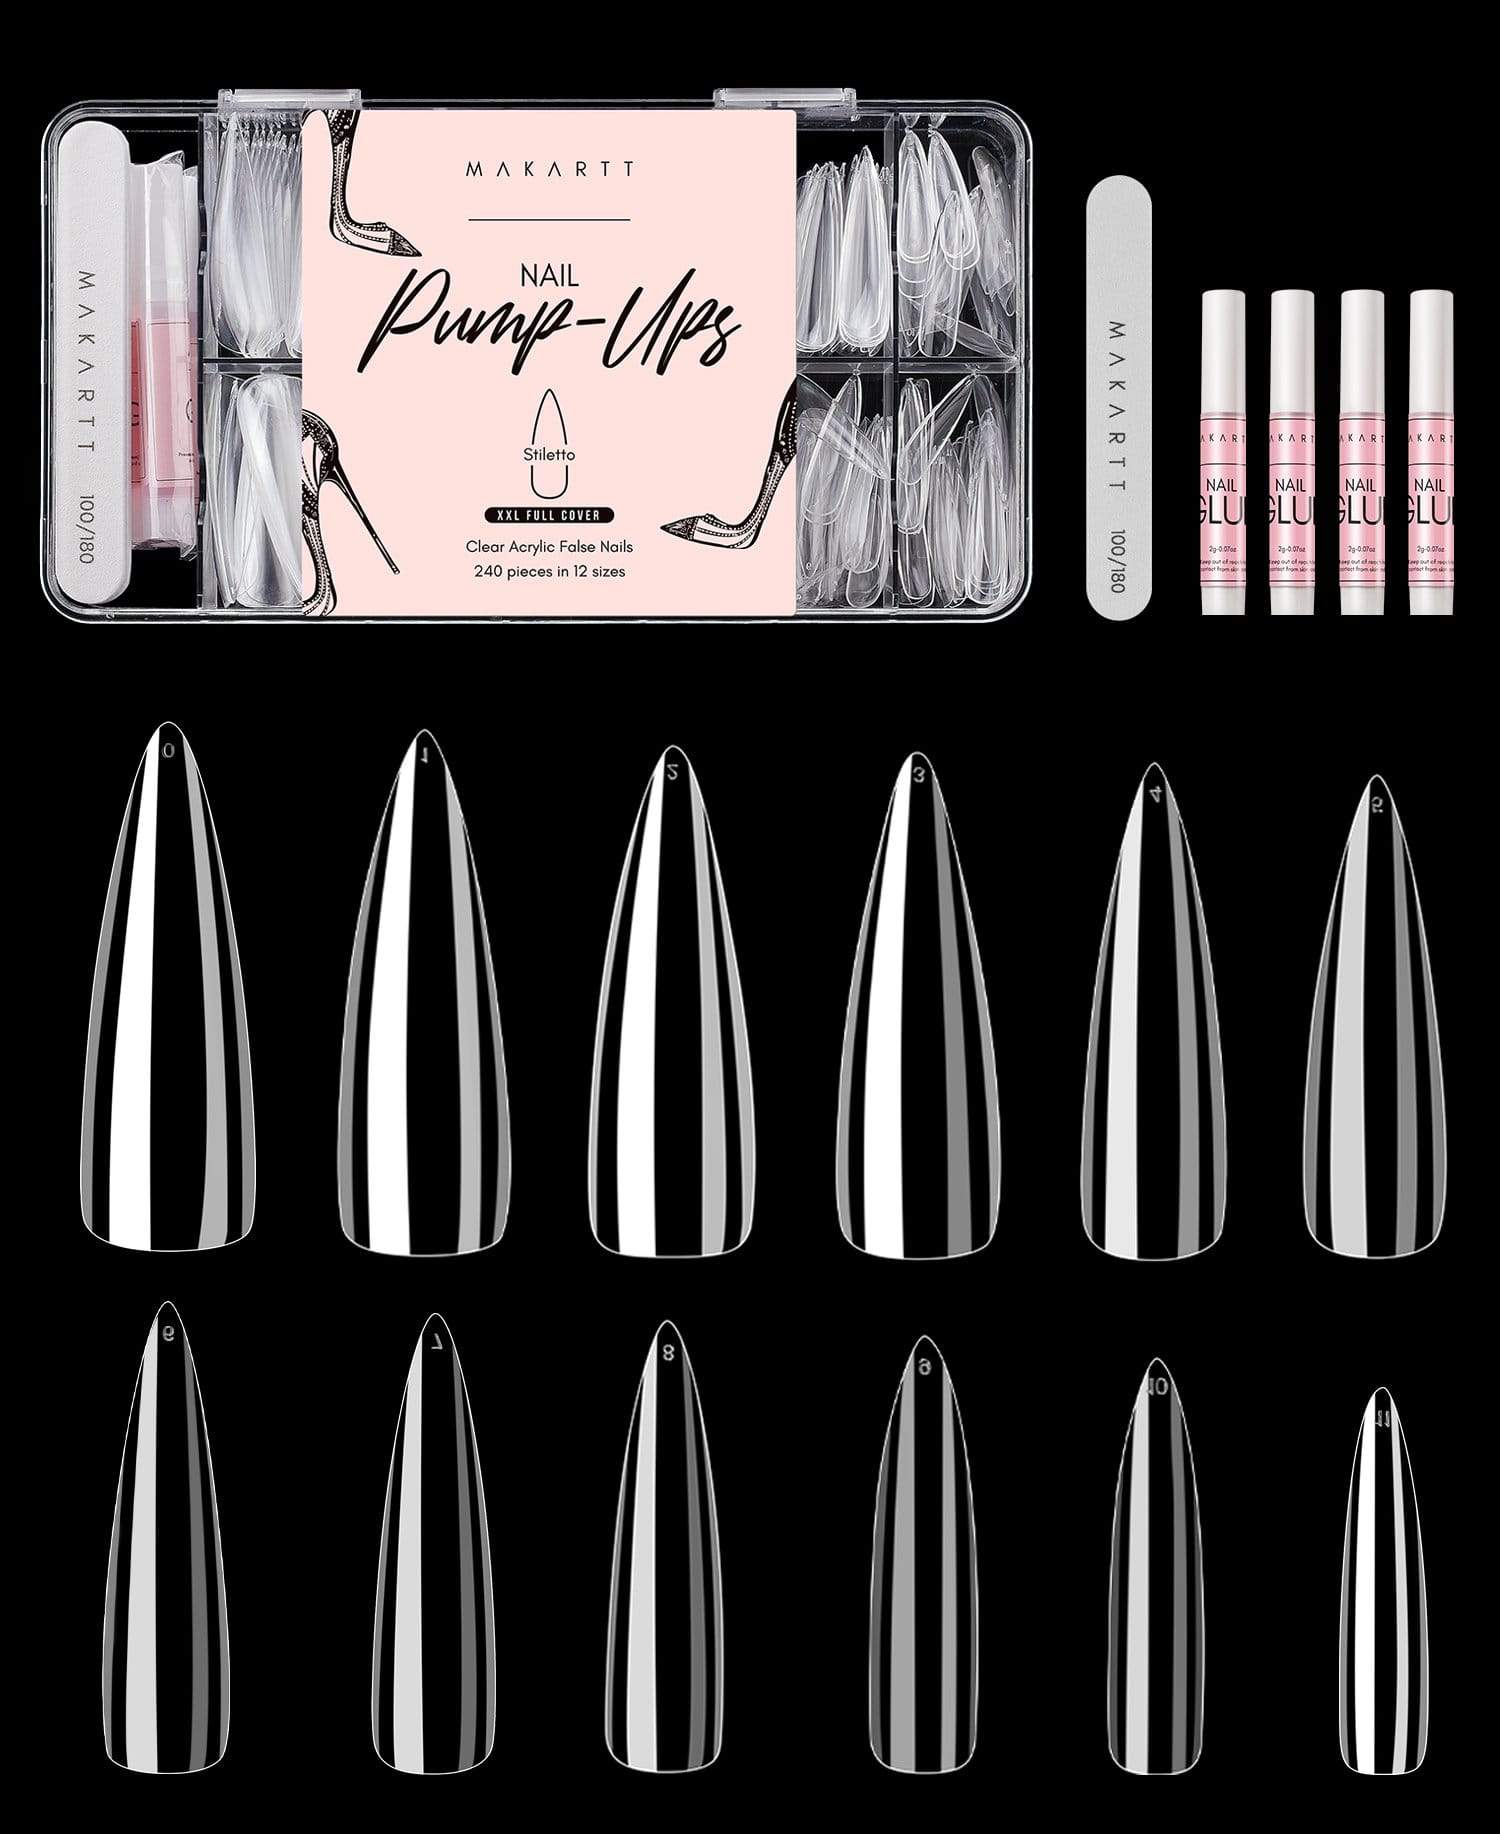 XXL Stiletto Full Cover Nail Tips Kit